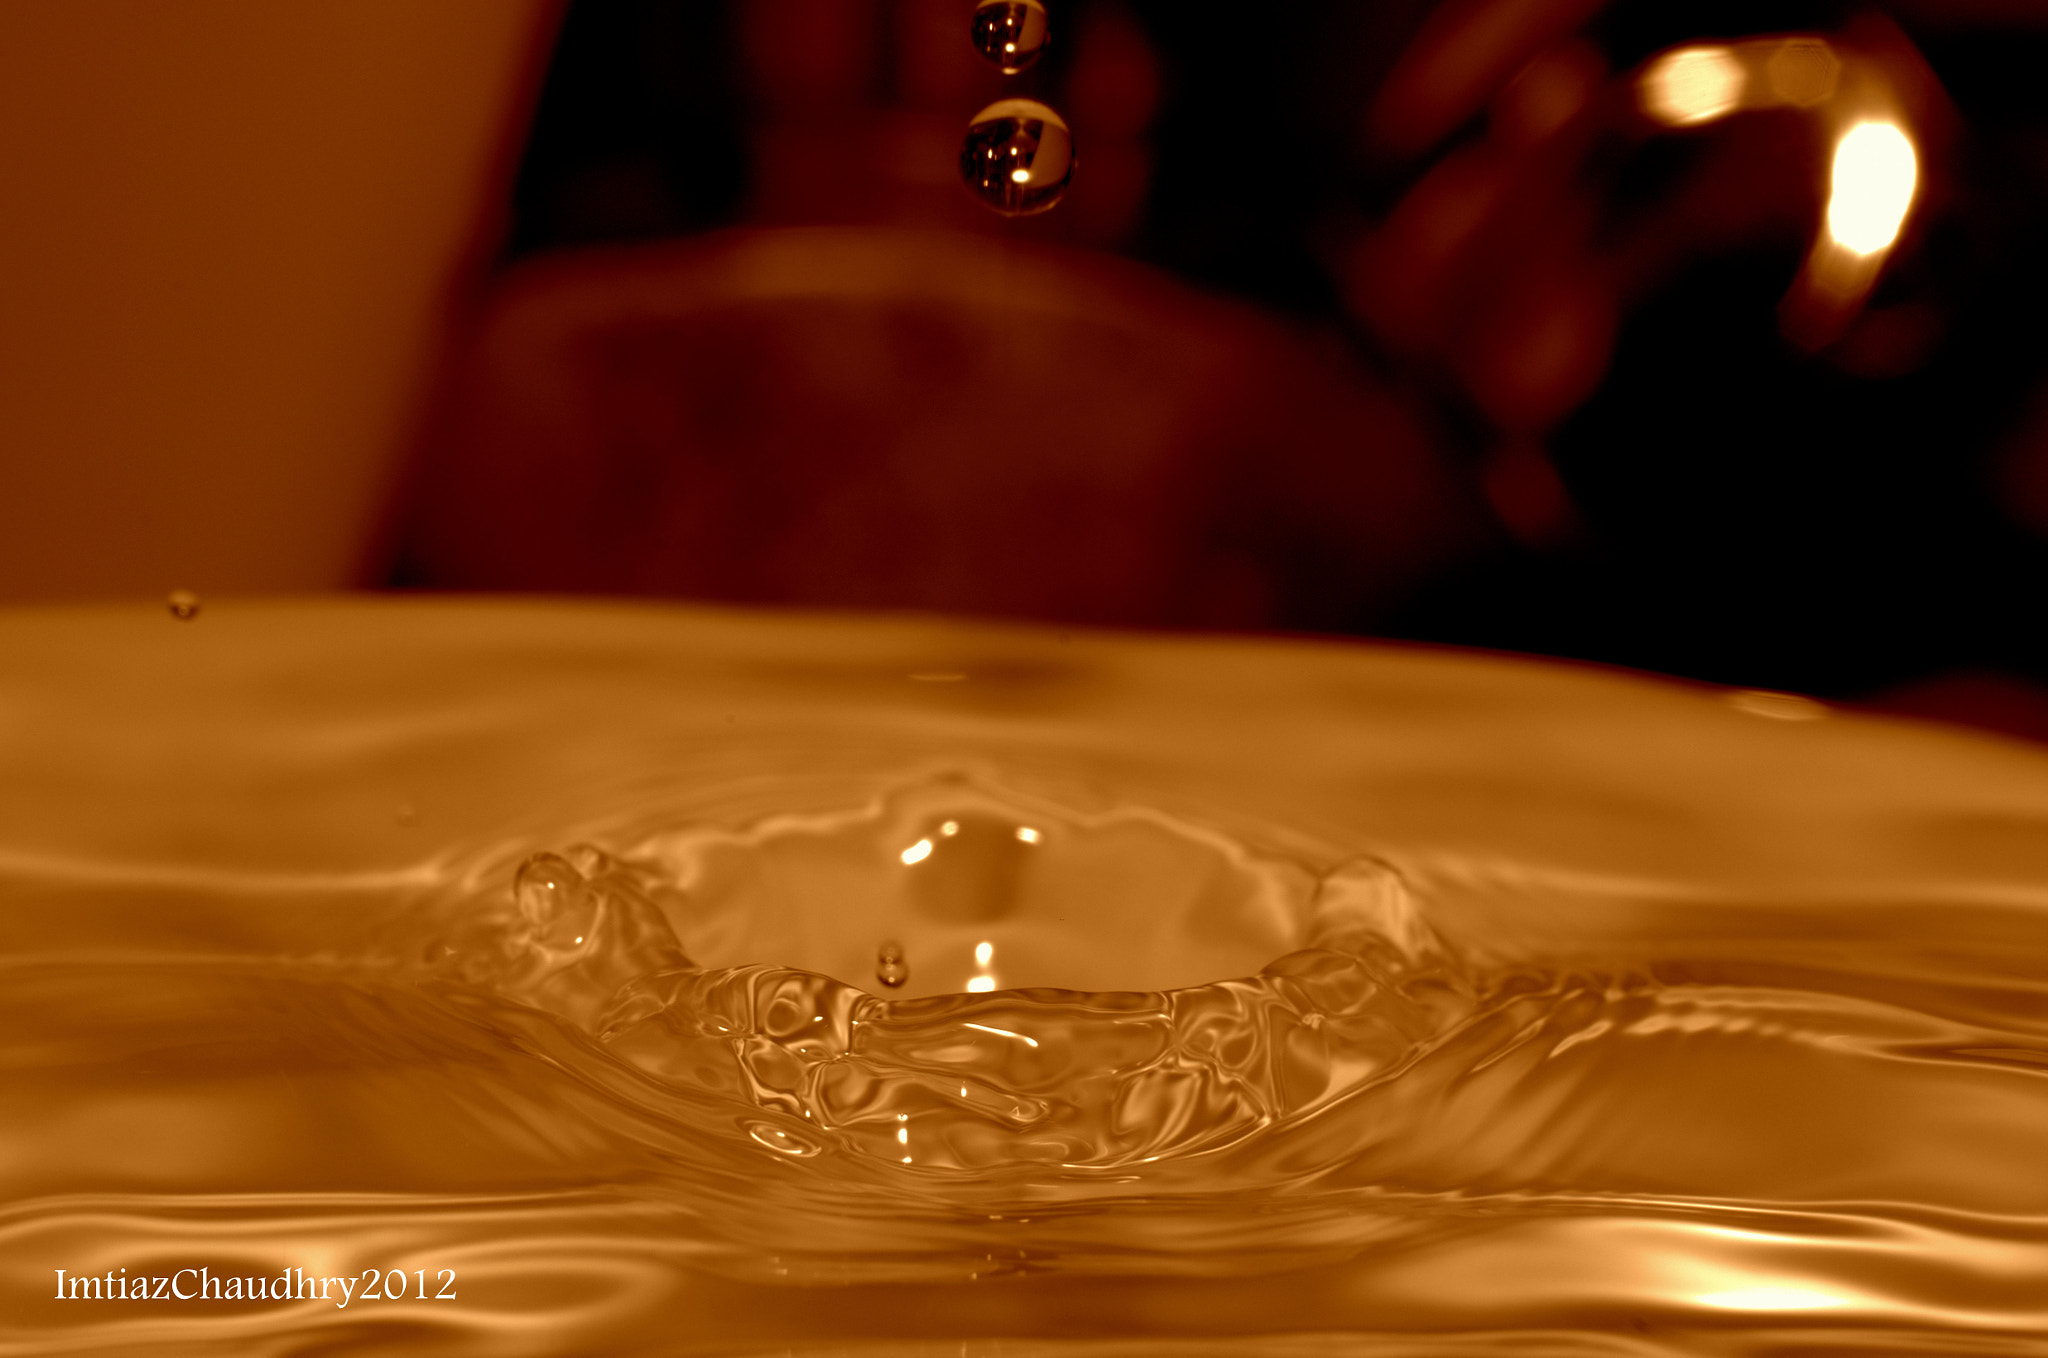 Photograph Drops by Imtiaz Chaudhry on 500px